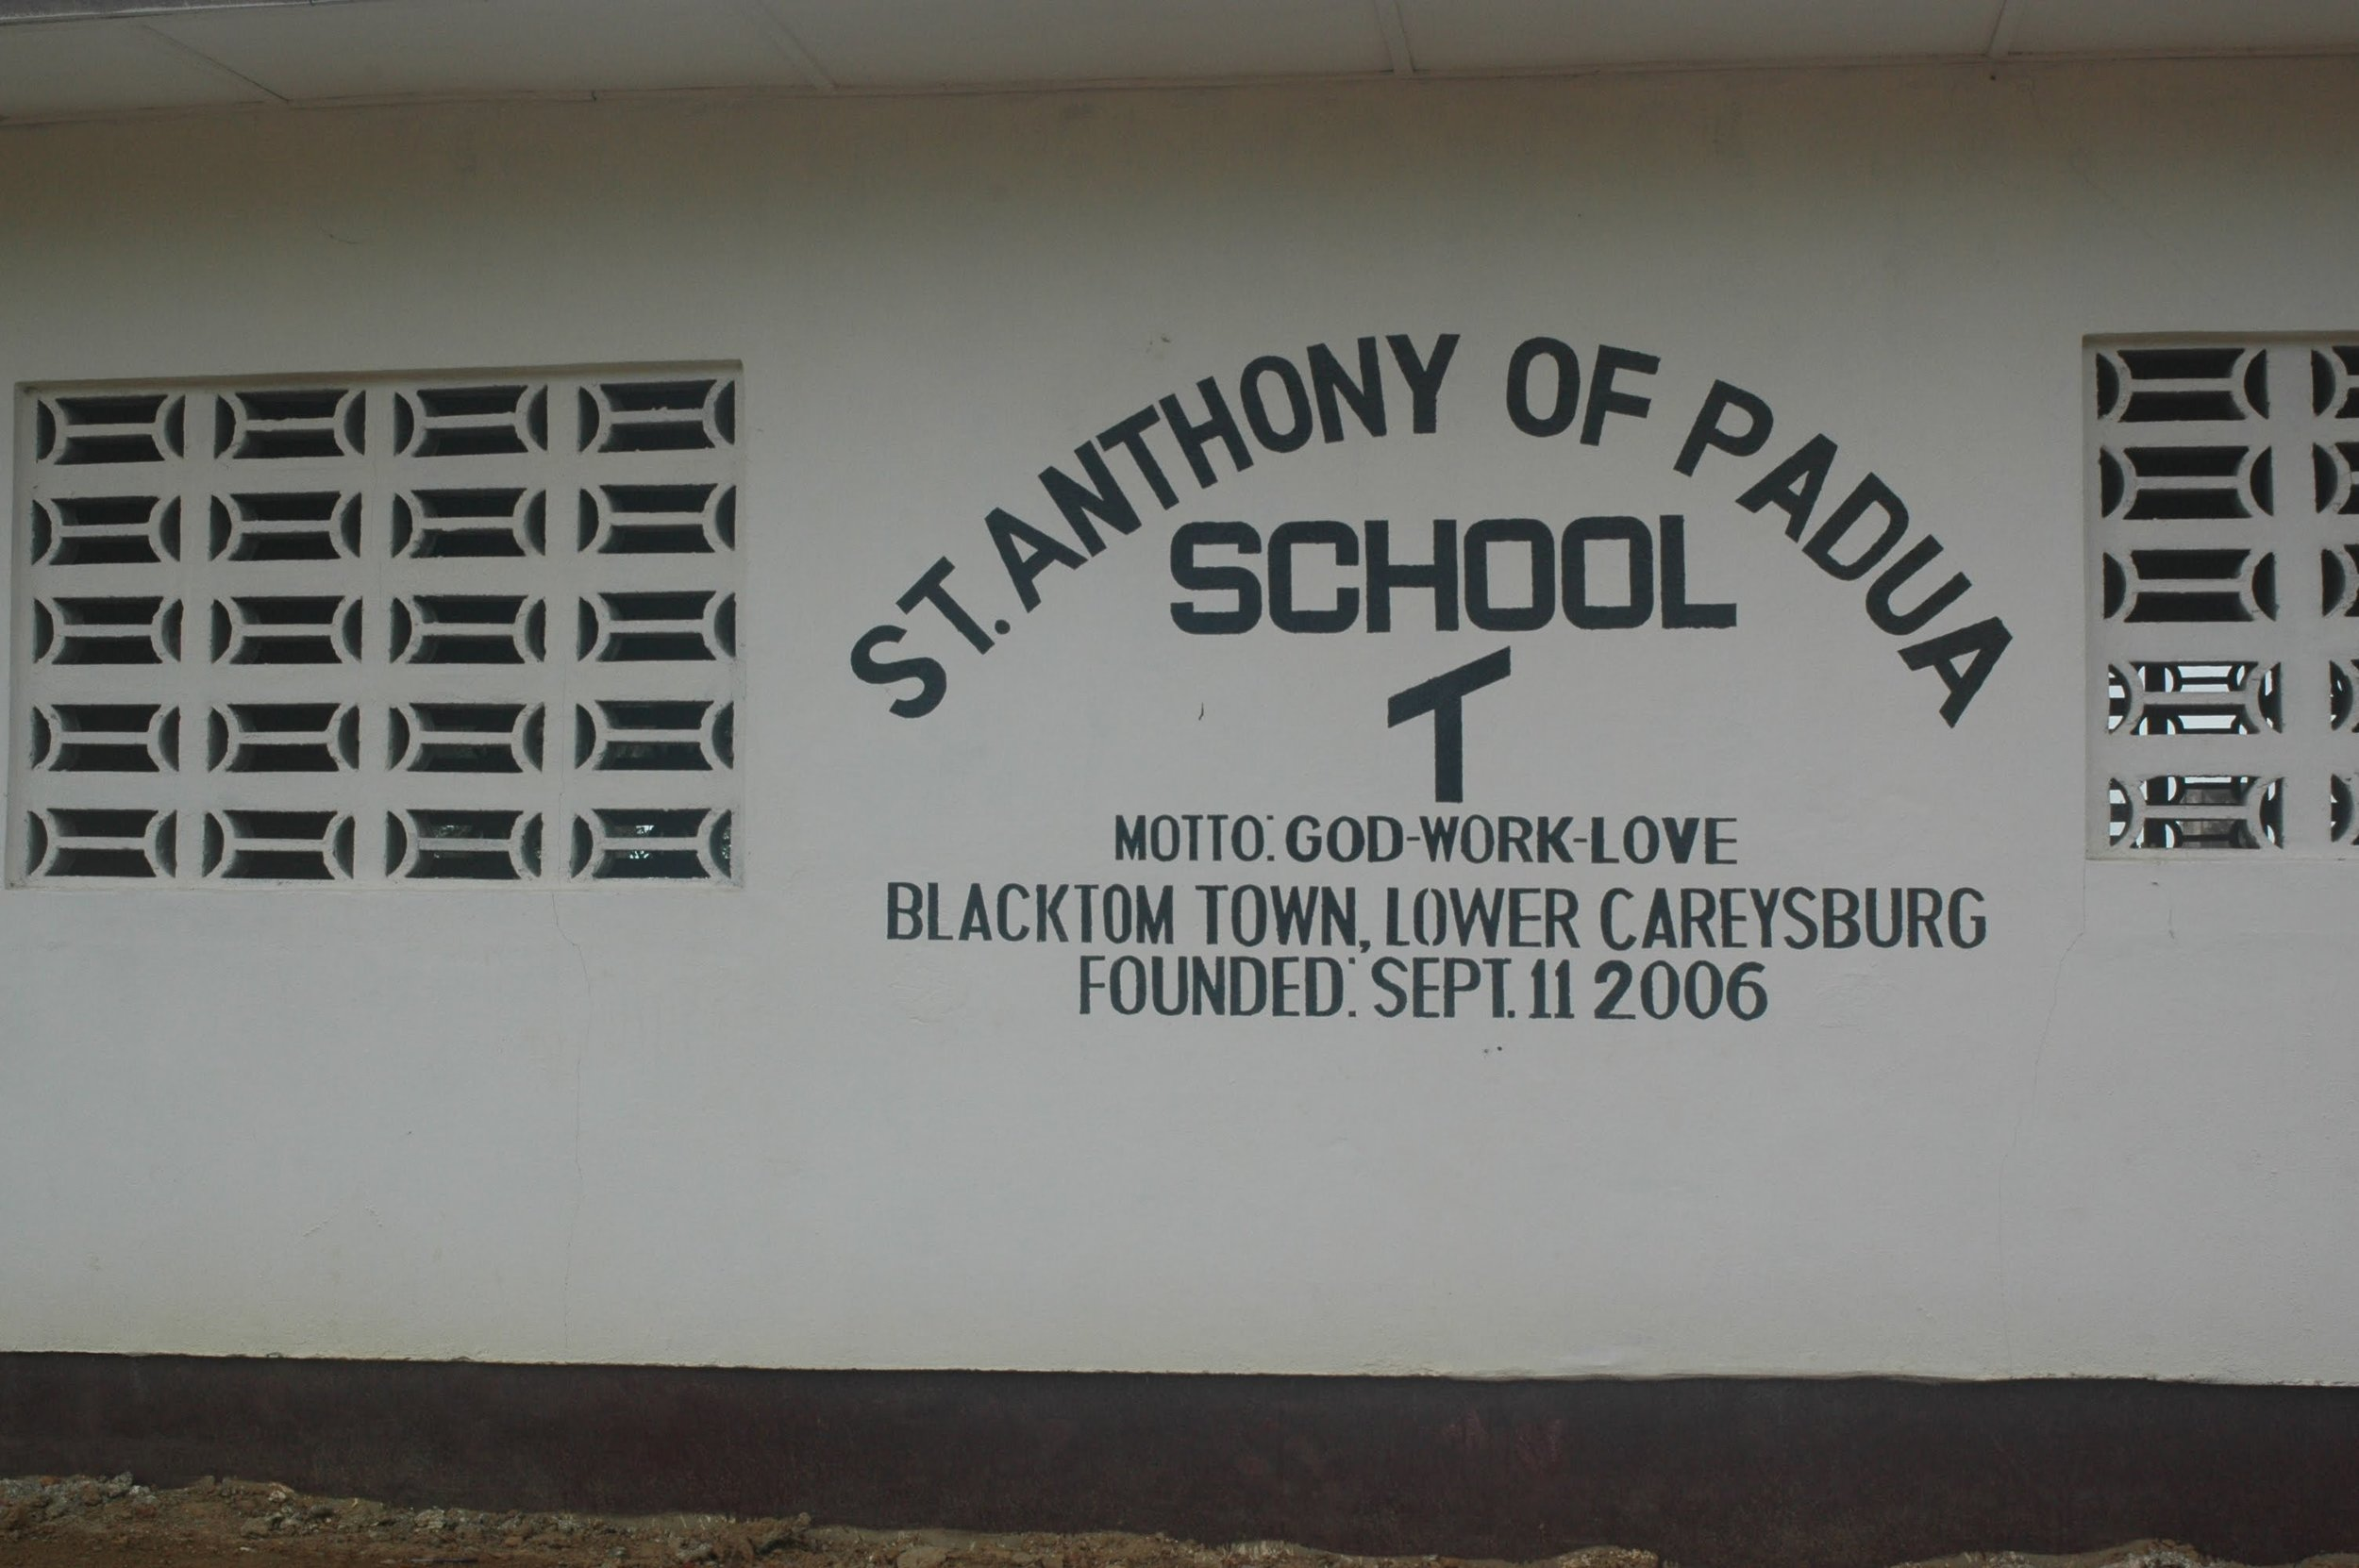 Our St. Anthony of Padua School was founded in 2006.